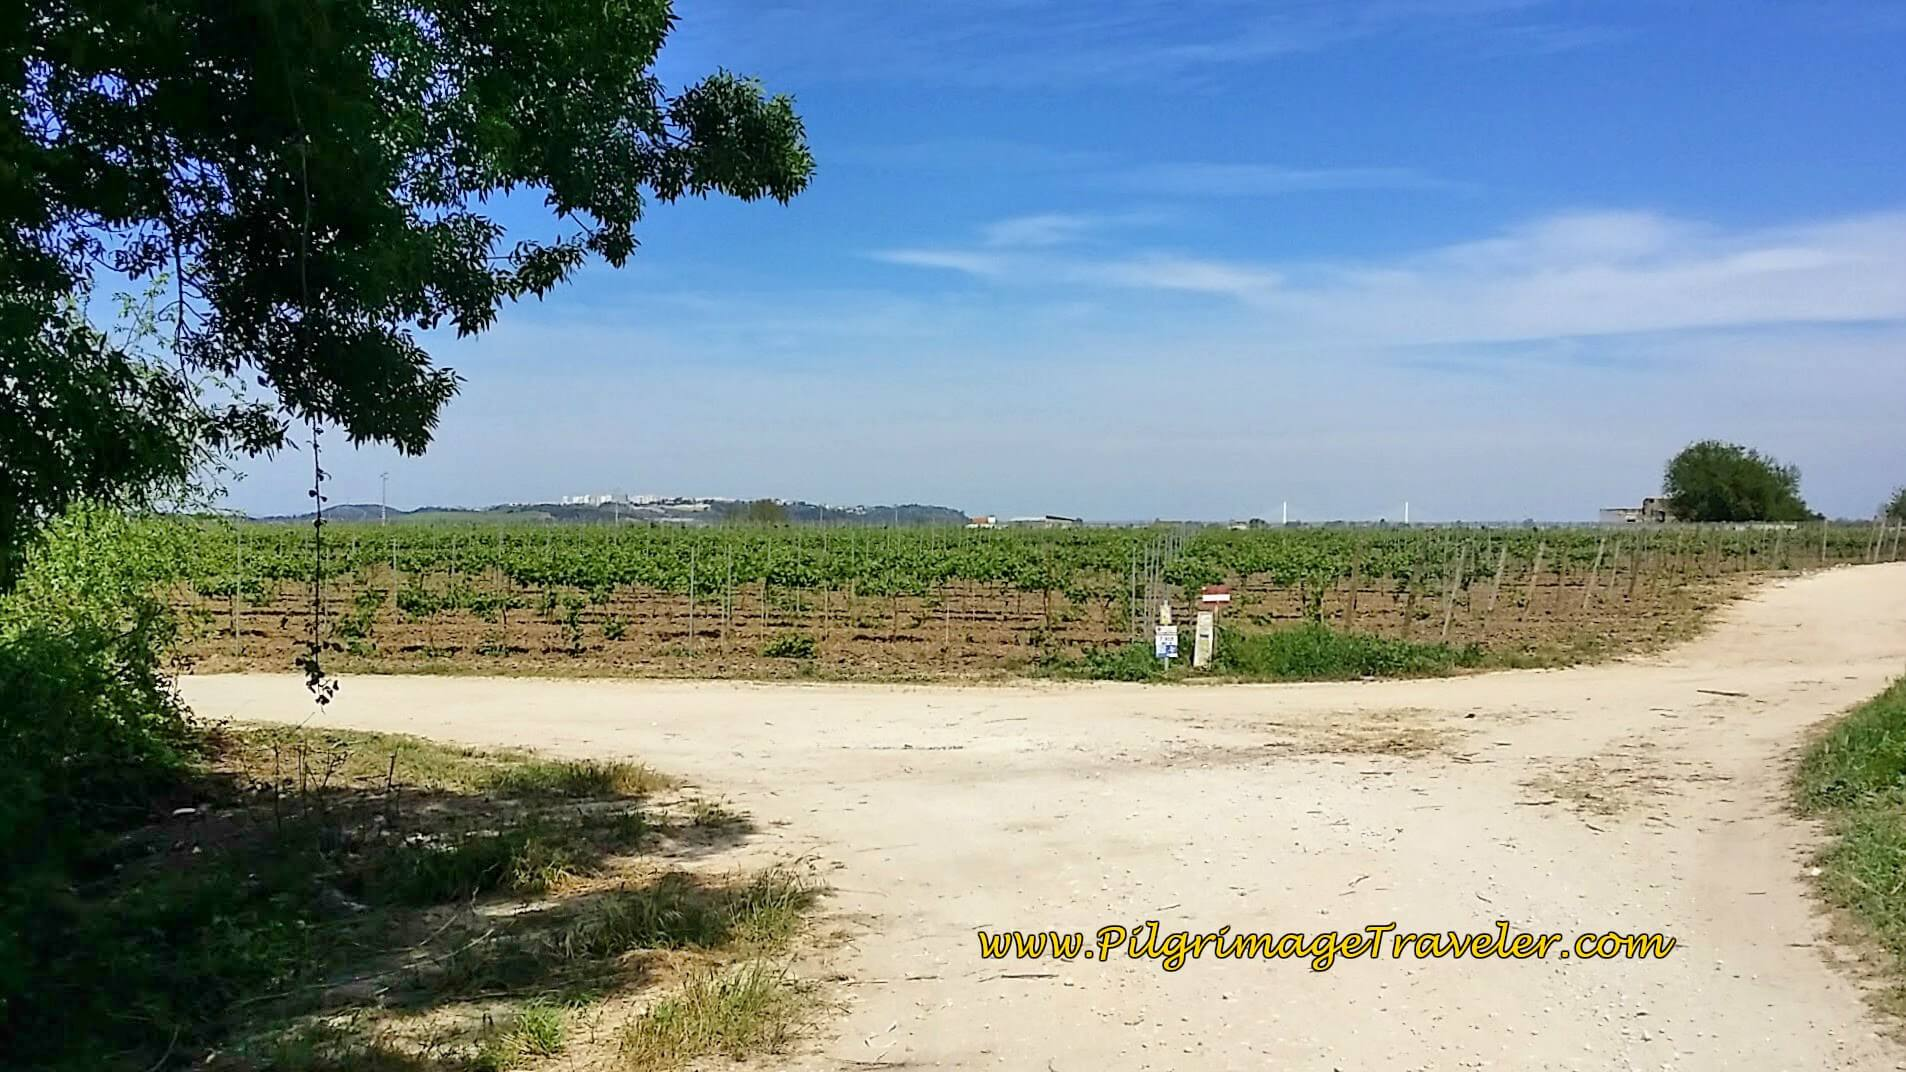 Photo of vineyards and Santarém ahead on the hill, Portugal